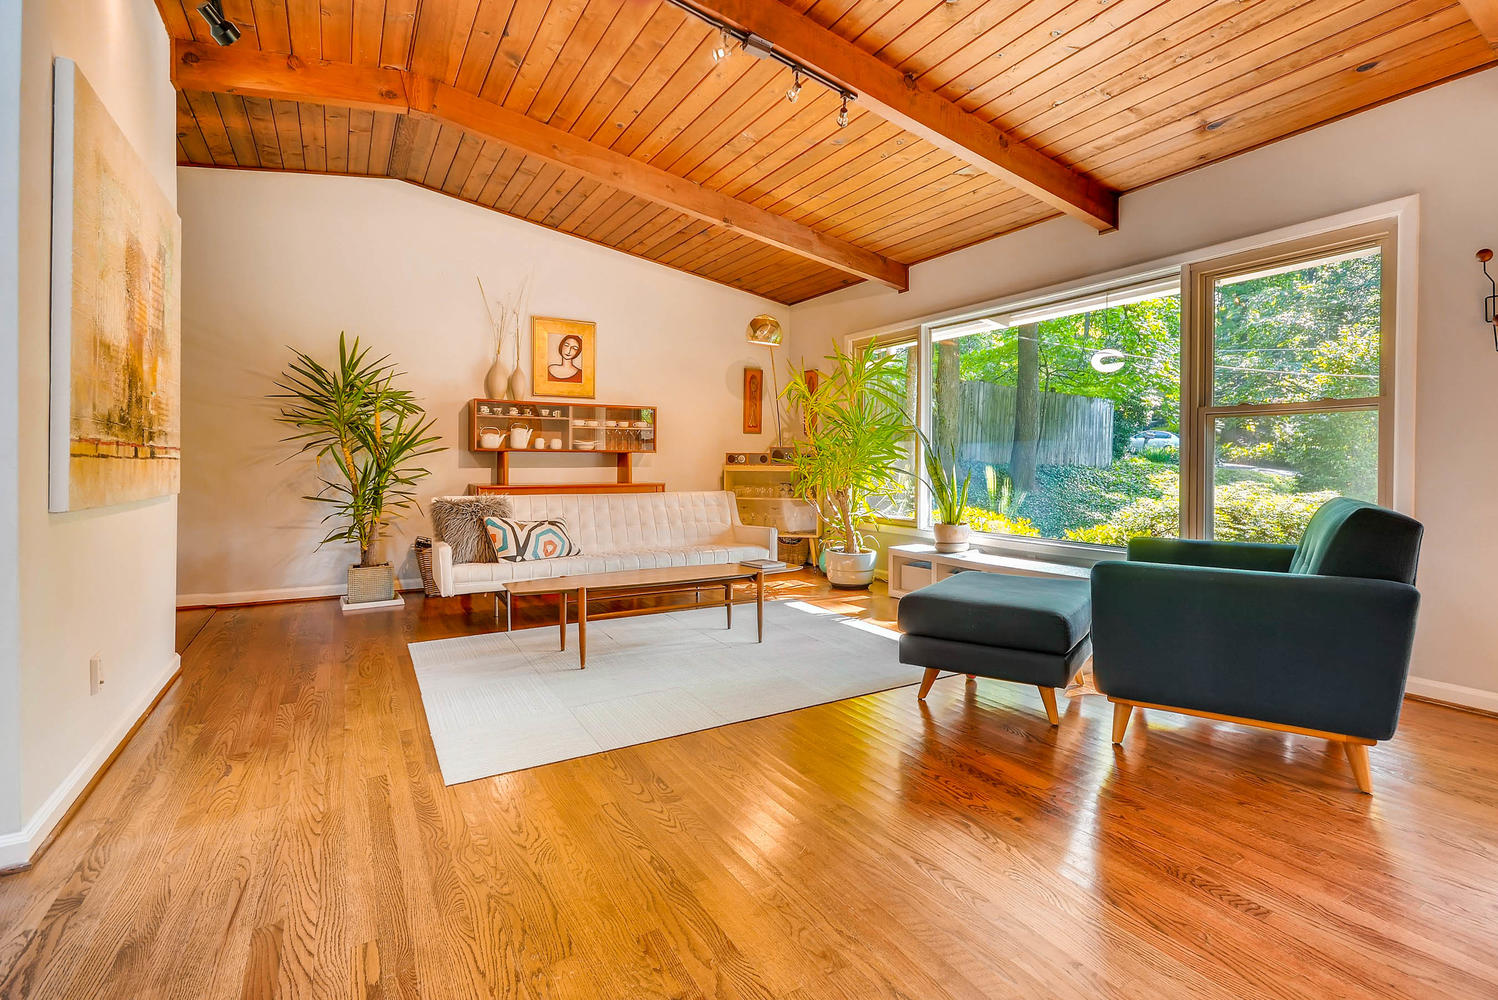 atlanta midcentury modern homes for sale Archives